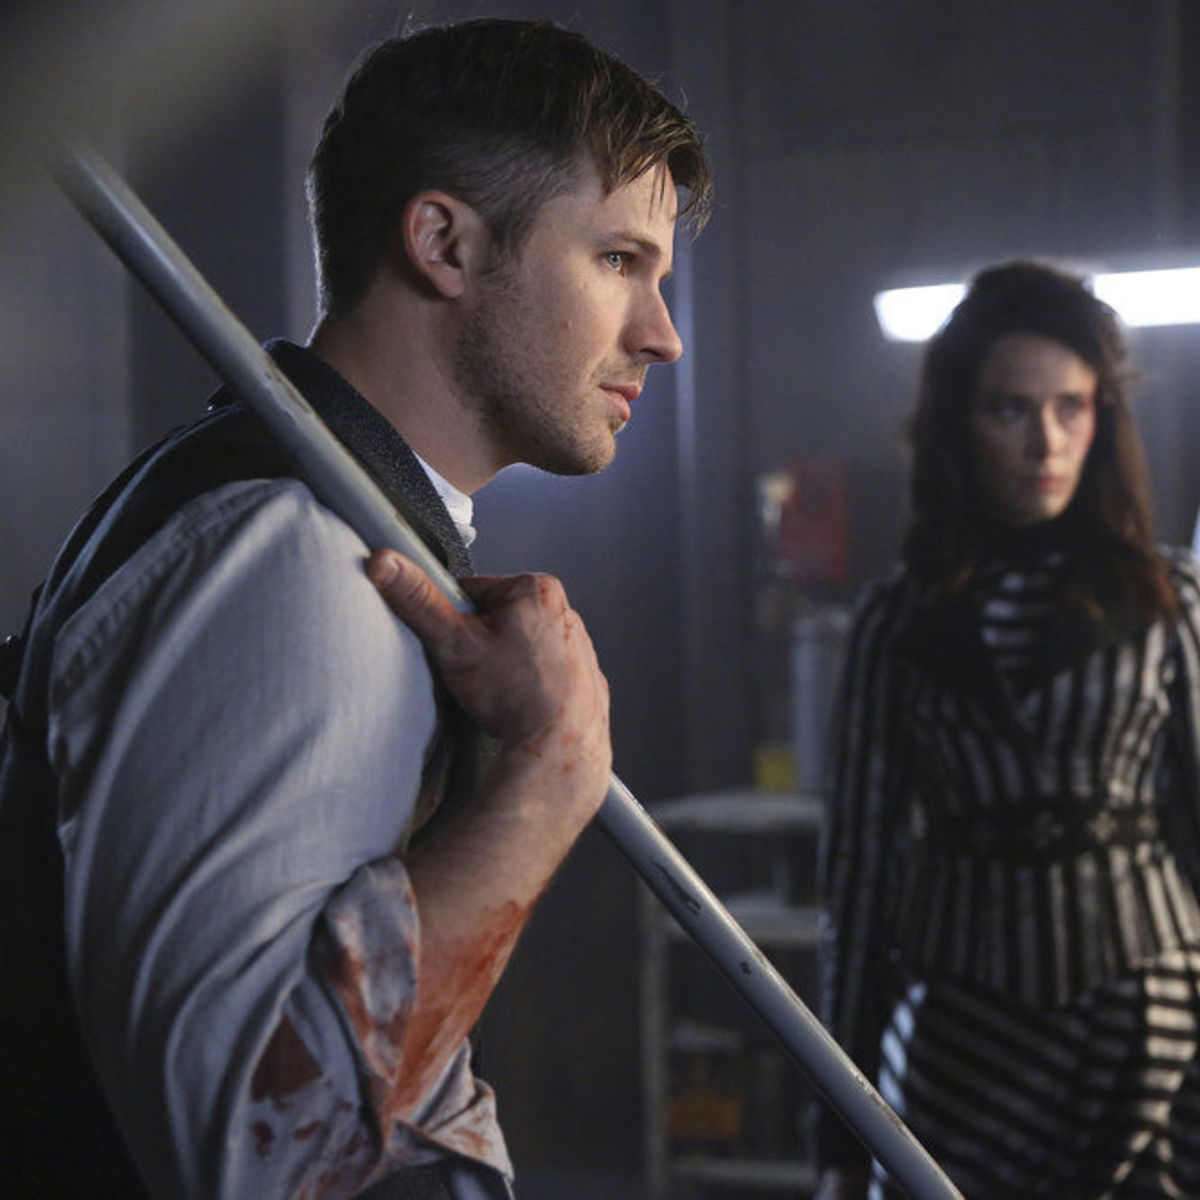 timeless two hour finale story approved by nbc set to premiere in